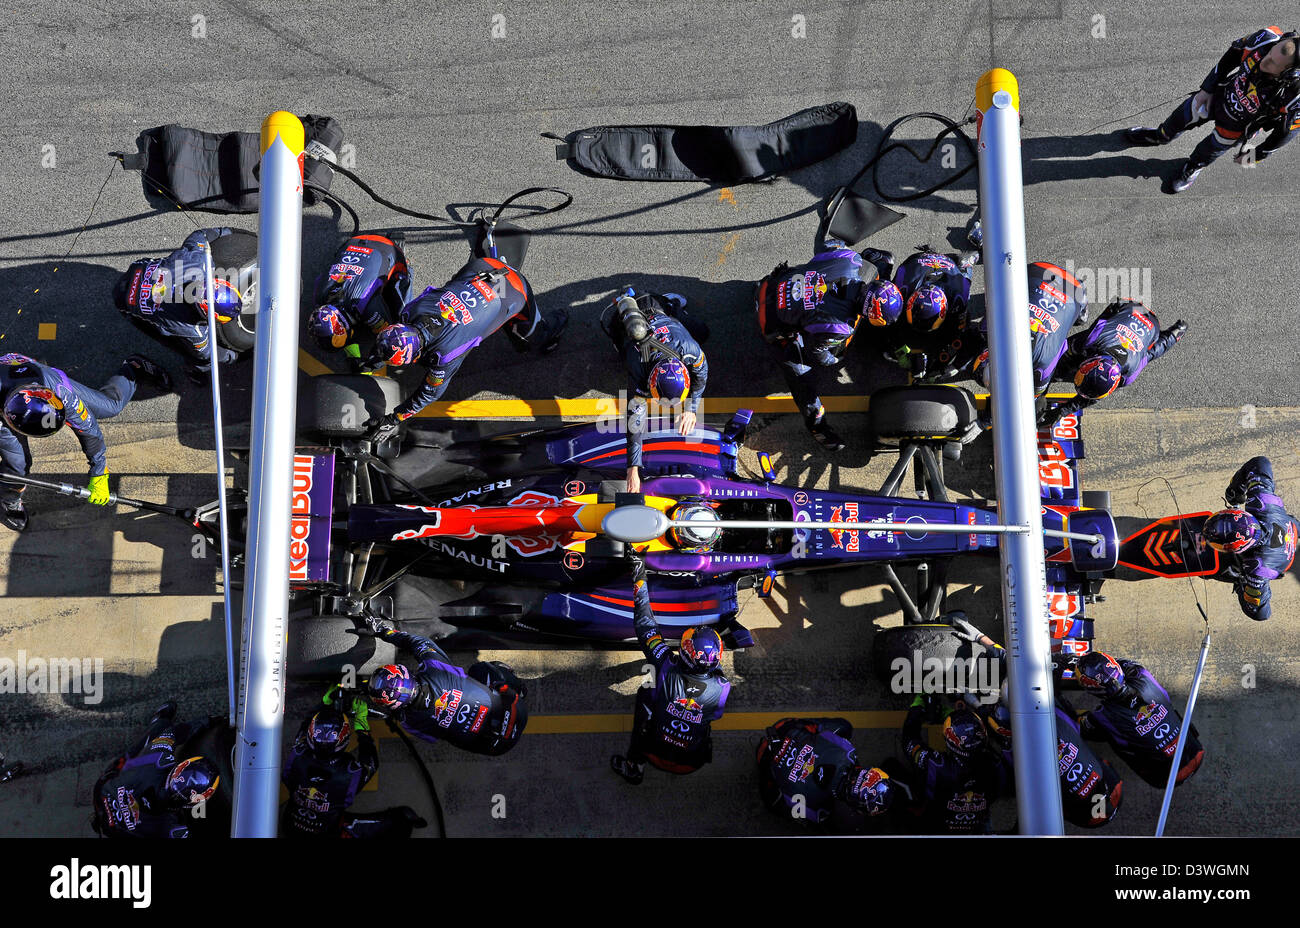 Sebastian Vettel (GER),Red Bull Racing RB9 and his mechanics practice pit stop during Formula One tests on Circuit - Stock Image